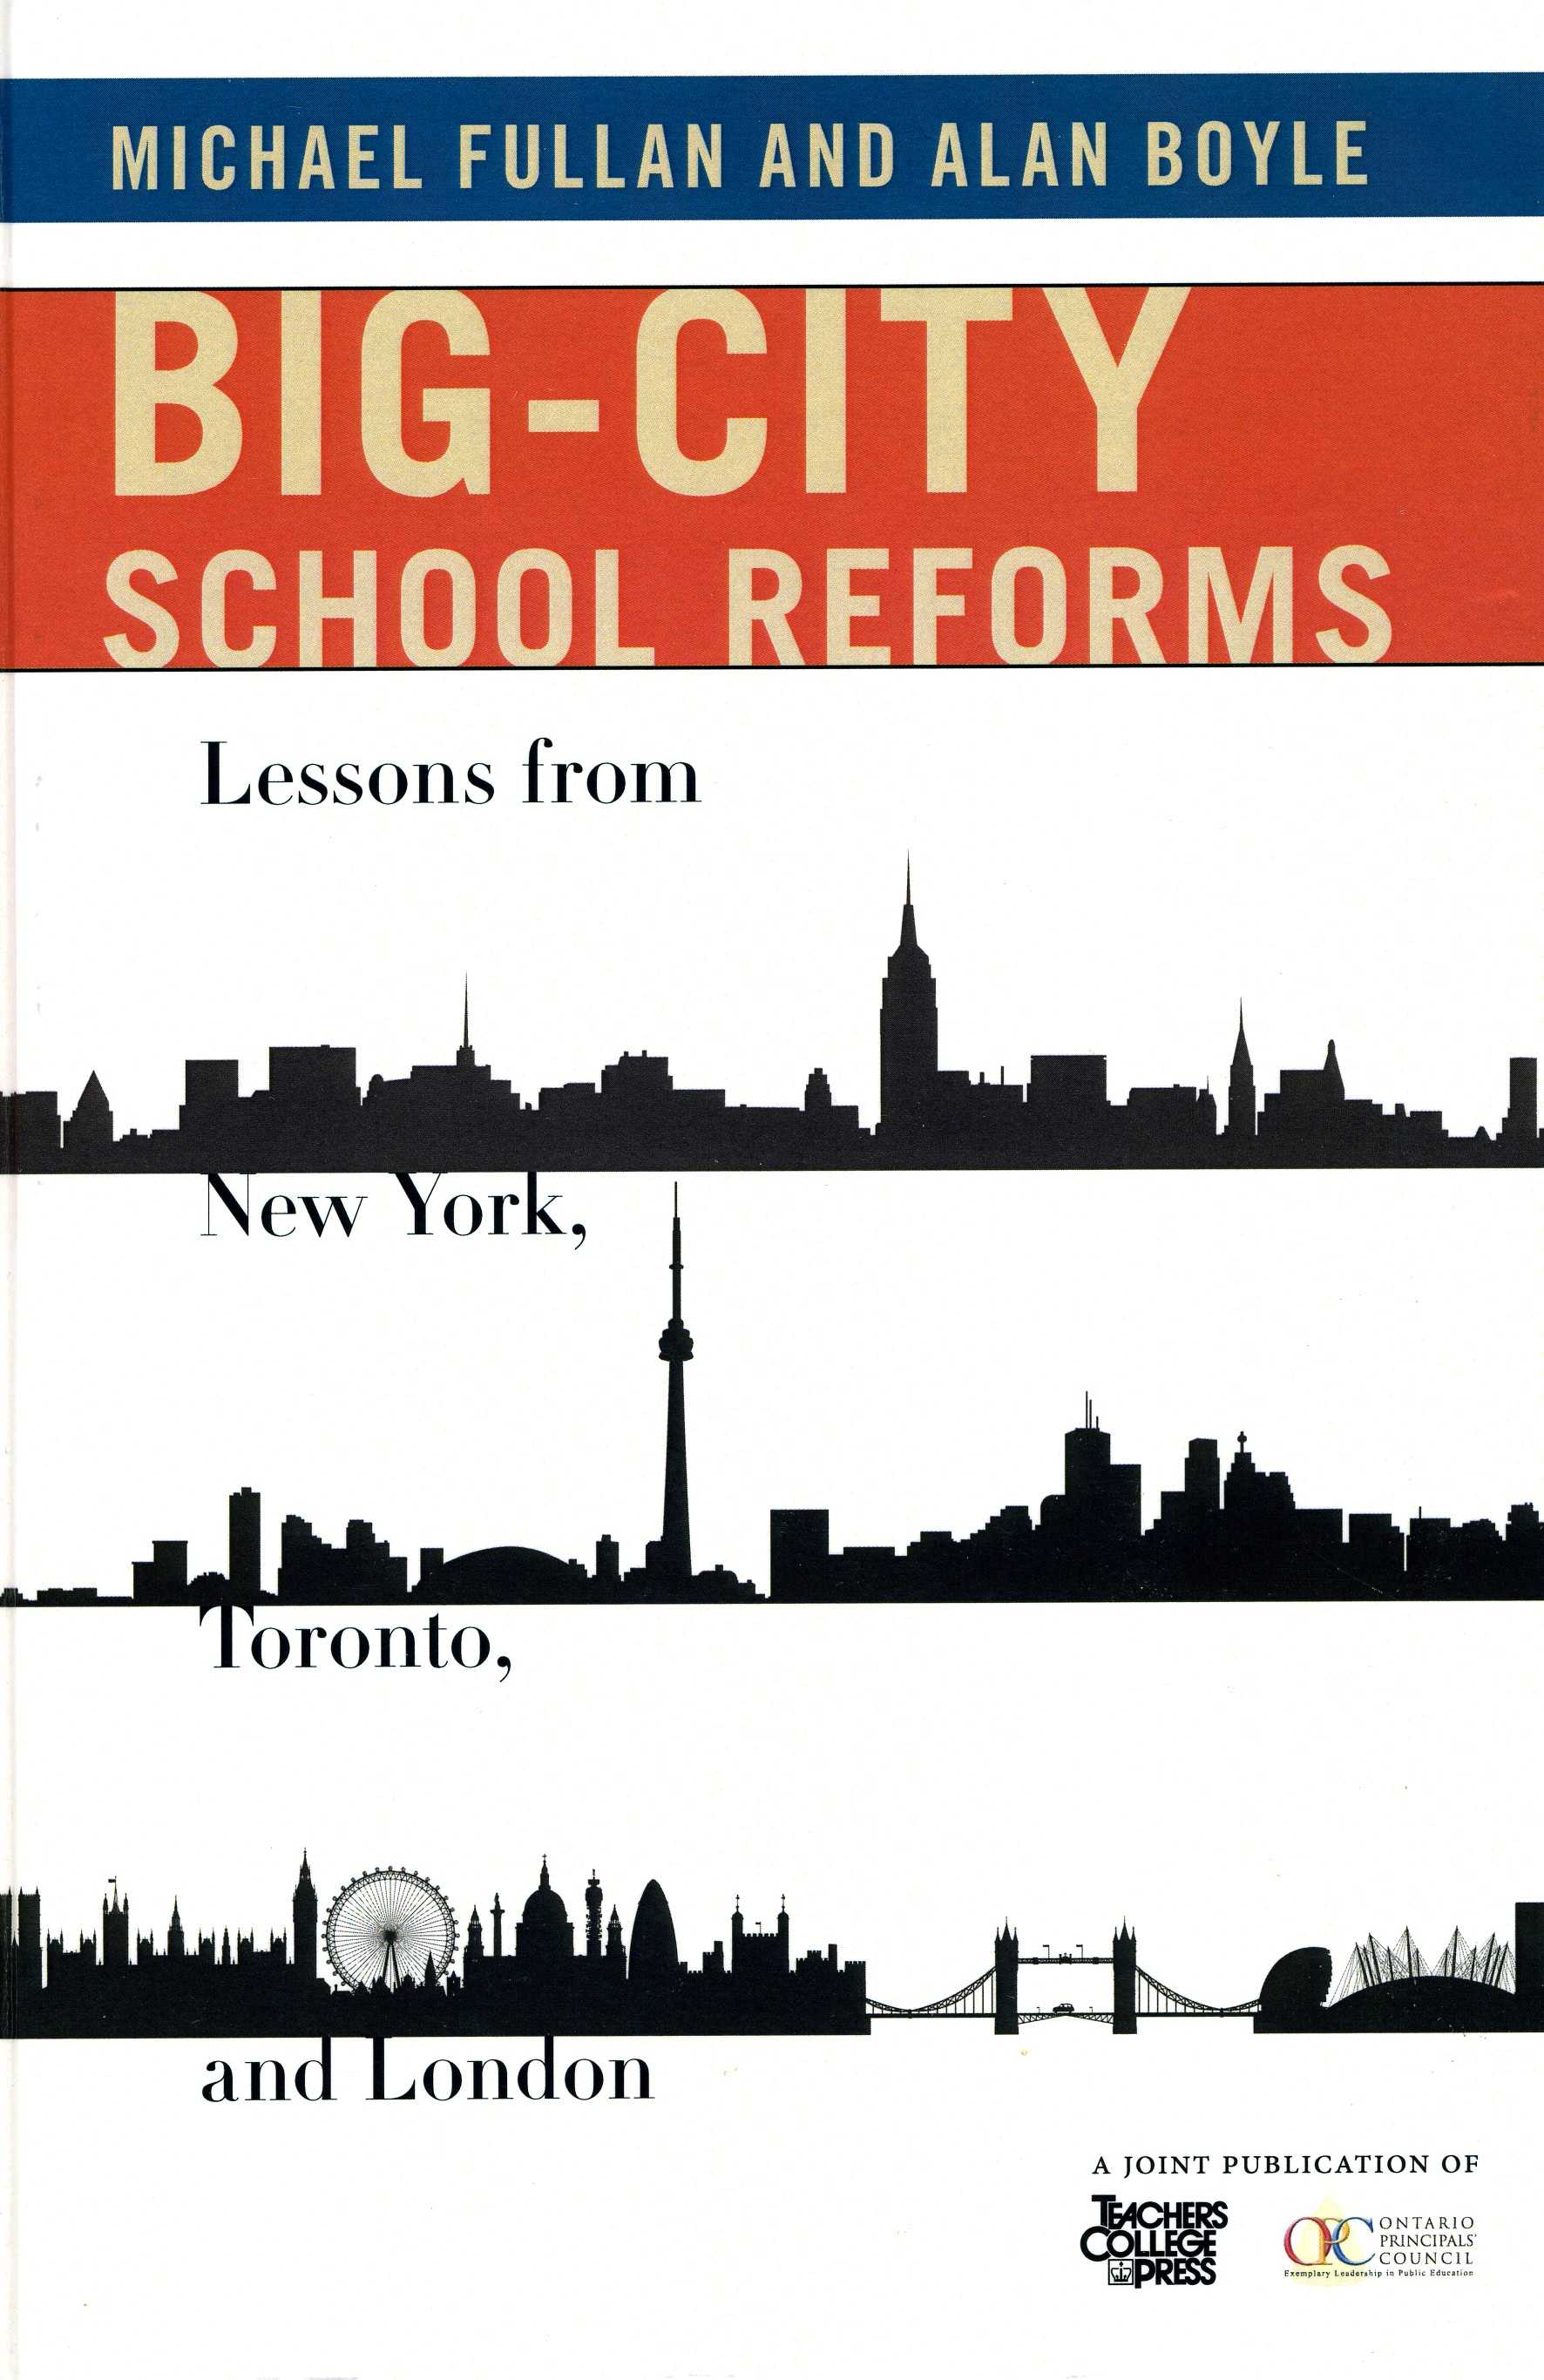 Big-City School Reforms